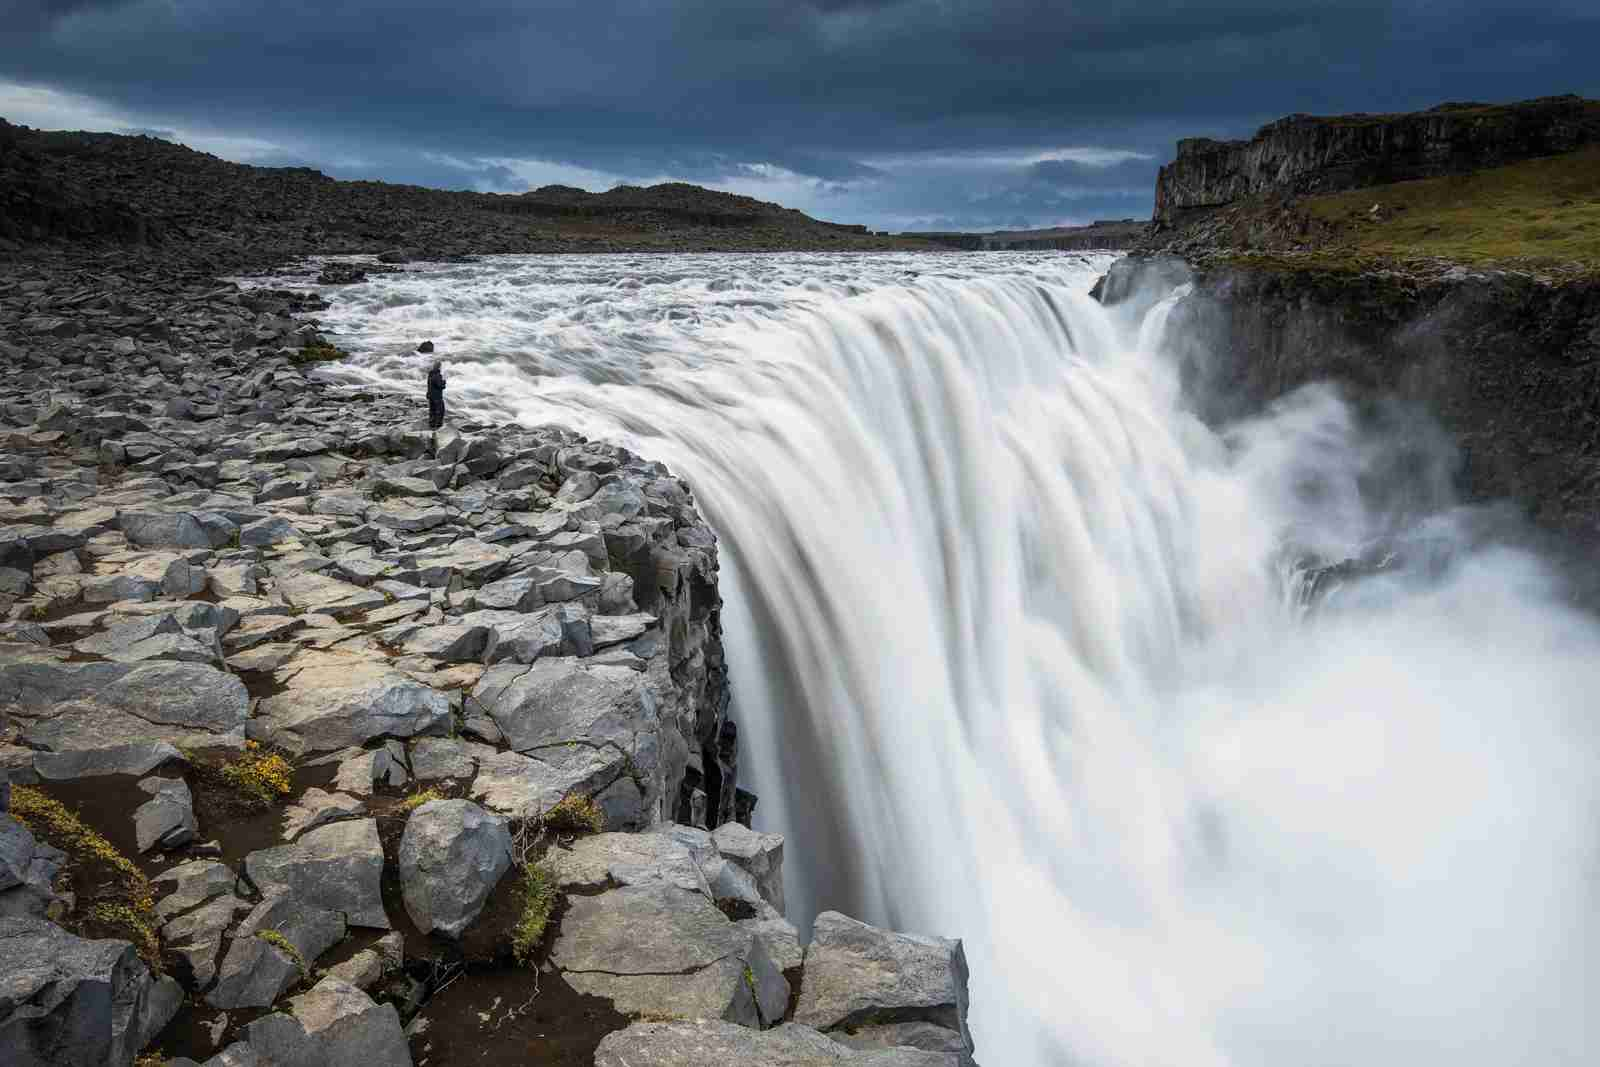 Dettifoss waterfall in northern Iceland. (Photo by Erwan Le Roux/Getty Images)